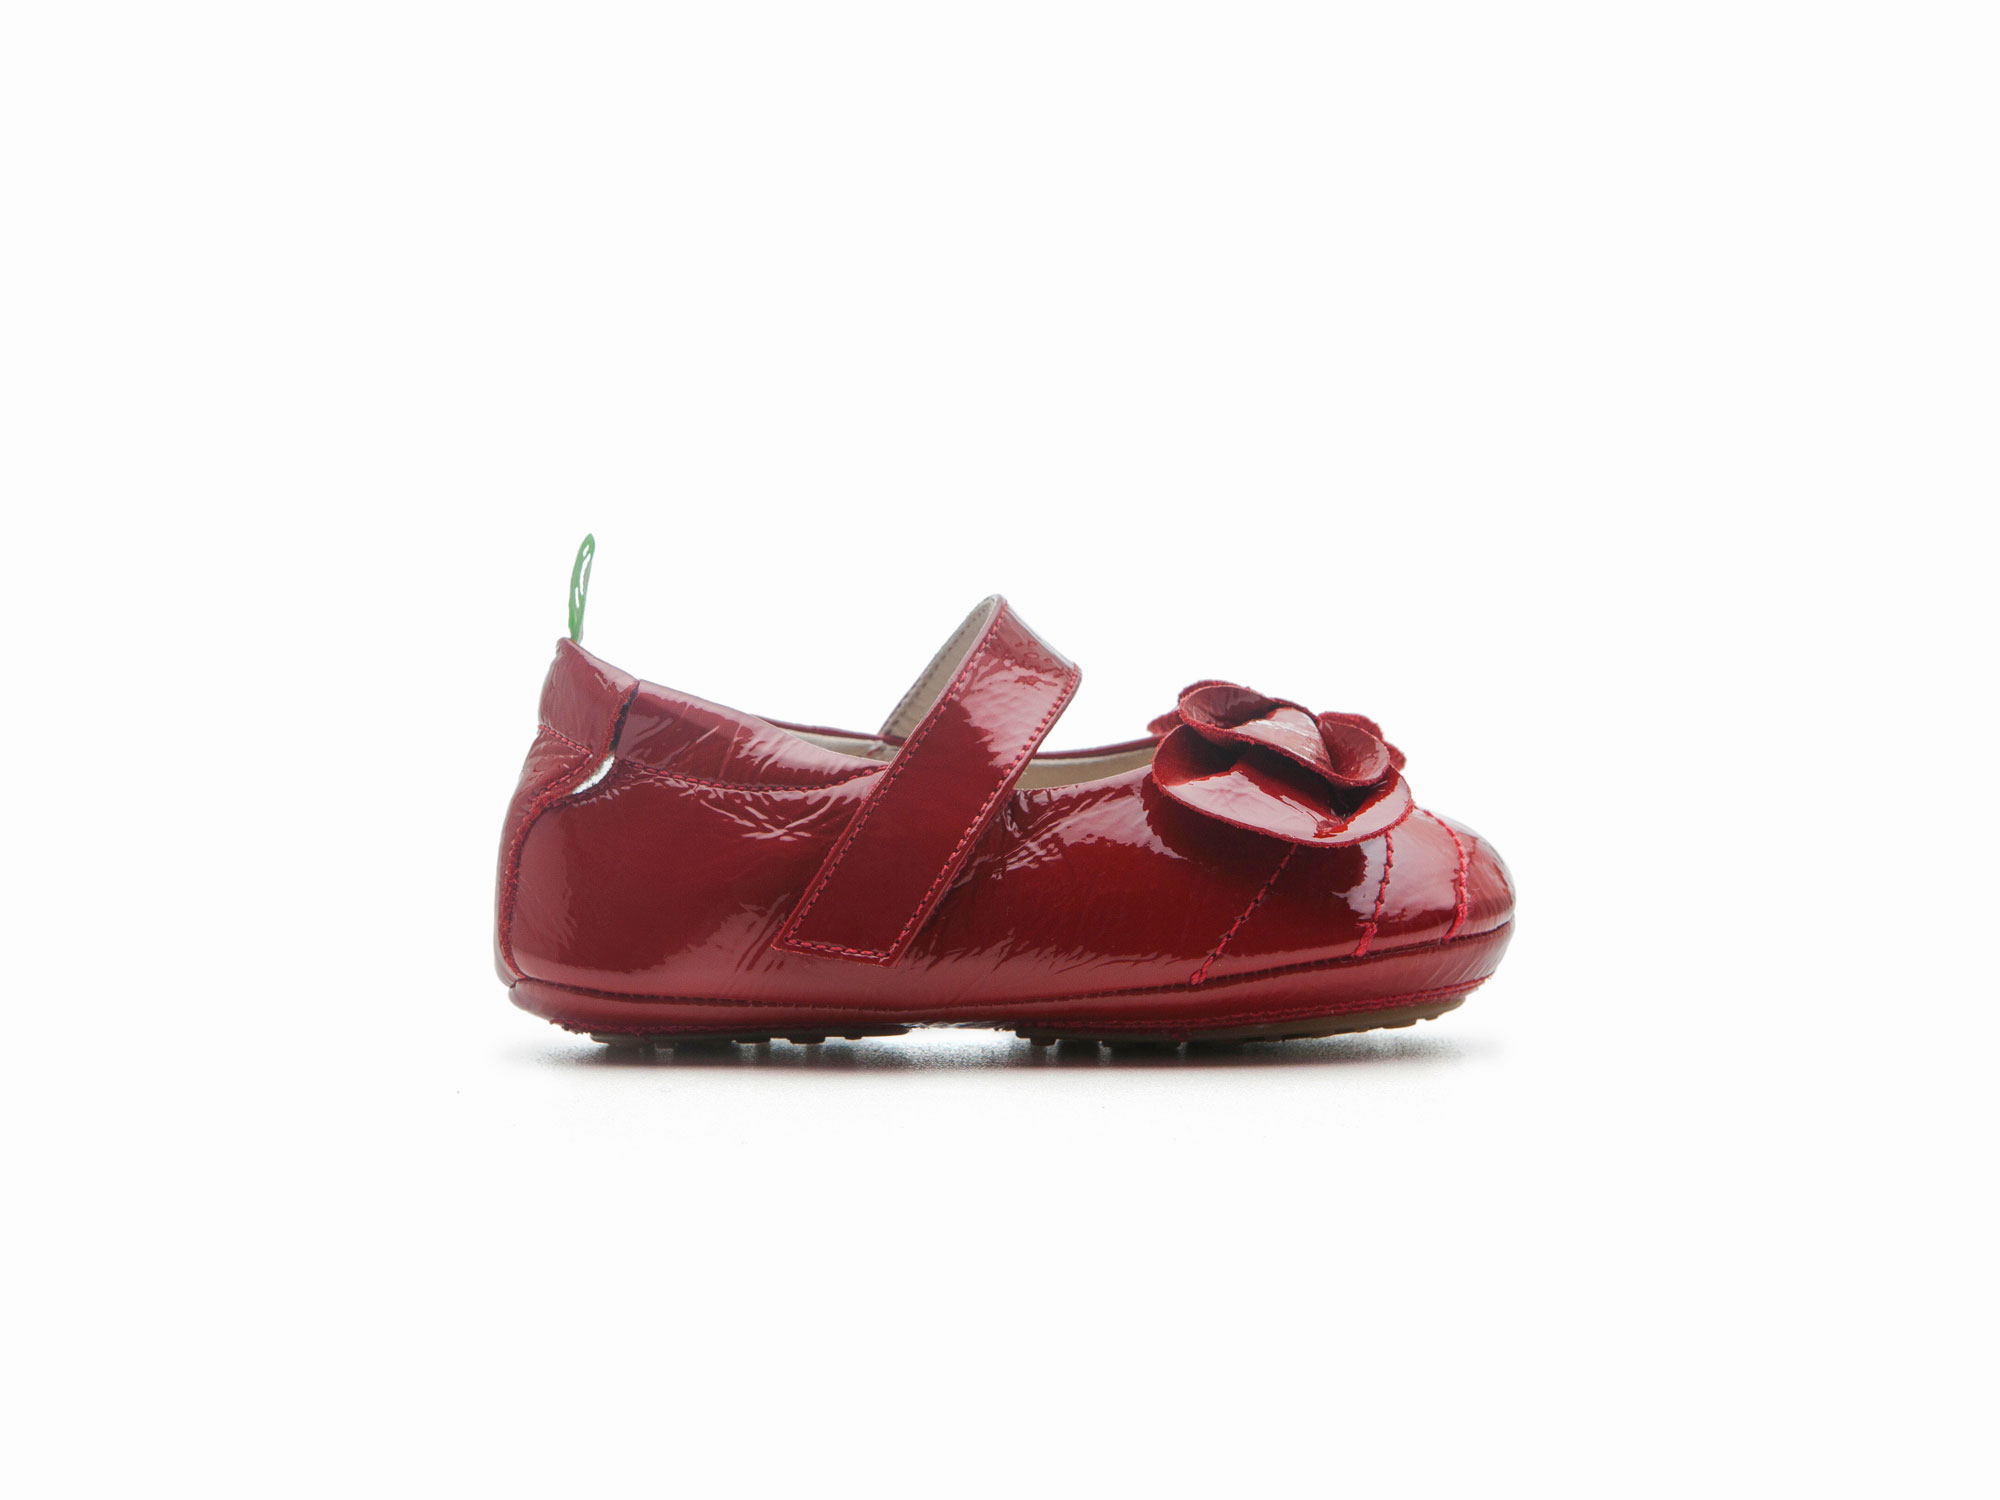 Mary Jane Fancy Patent Red Baby for ages 0 to 2 years - 2